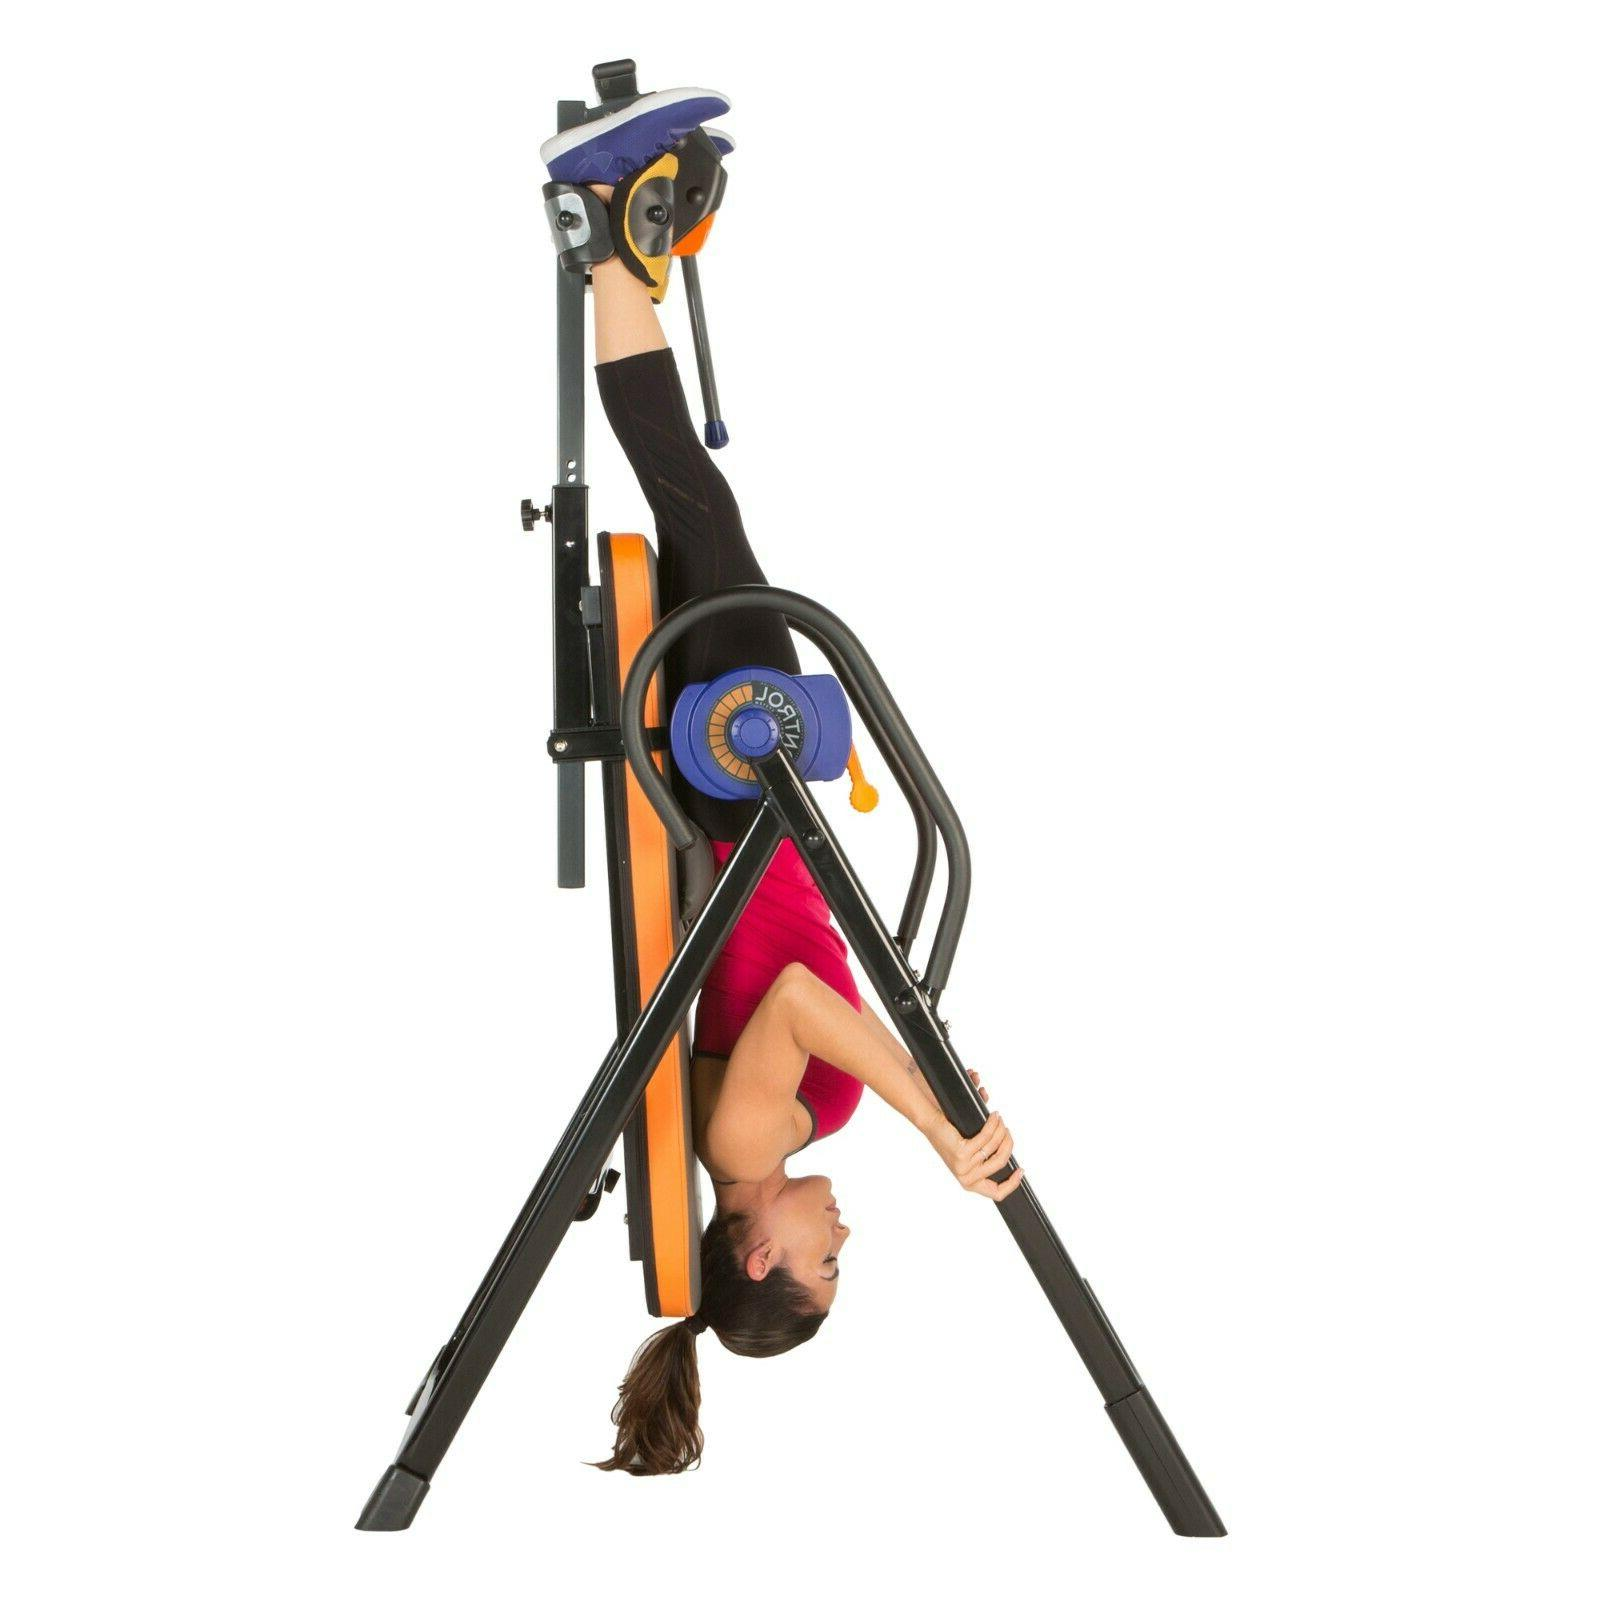 EXERPEUTIC Inversion Back Therapy Heavy Duty Pain